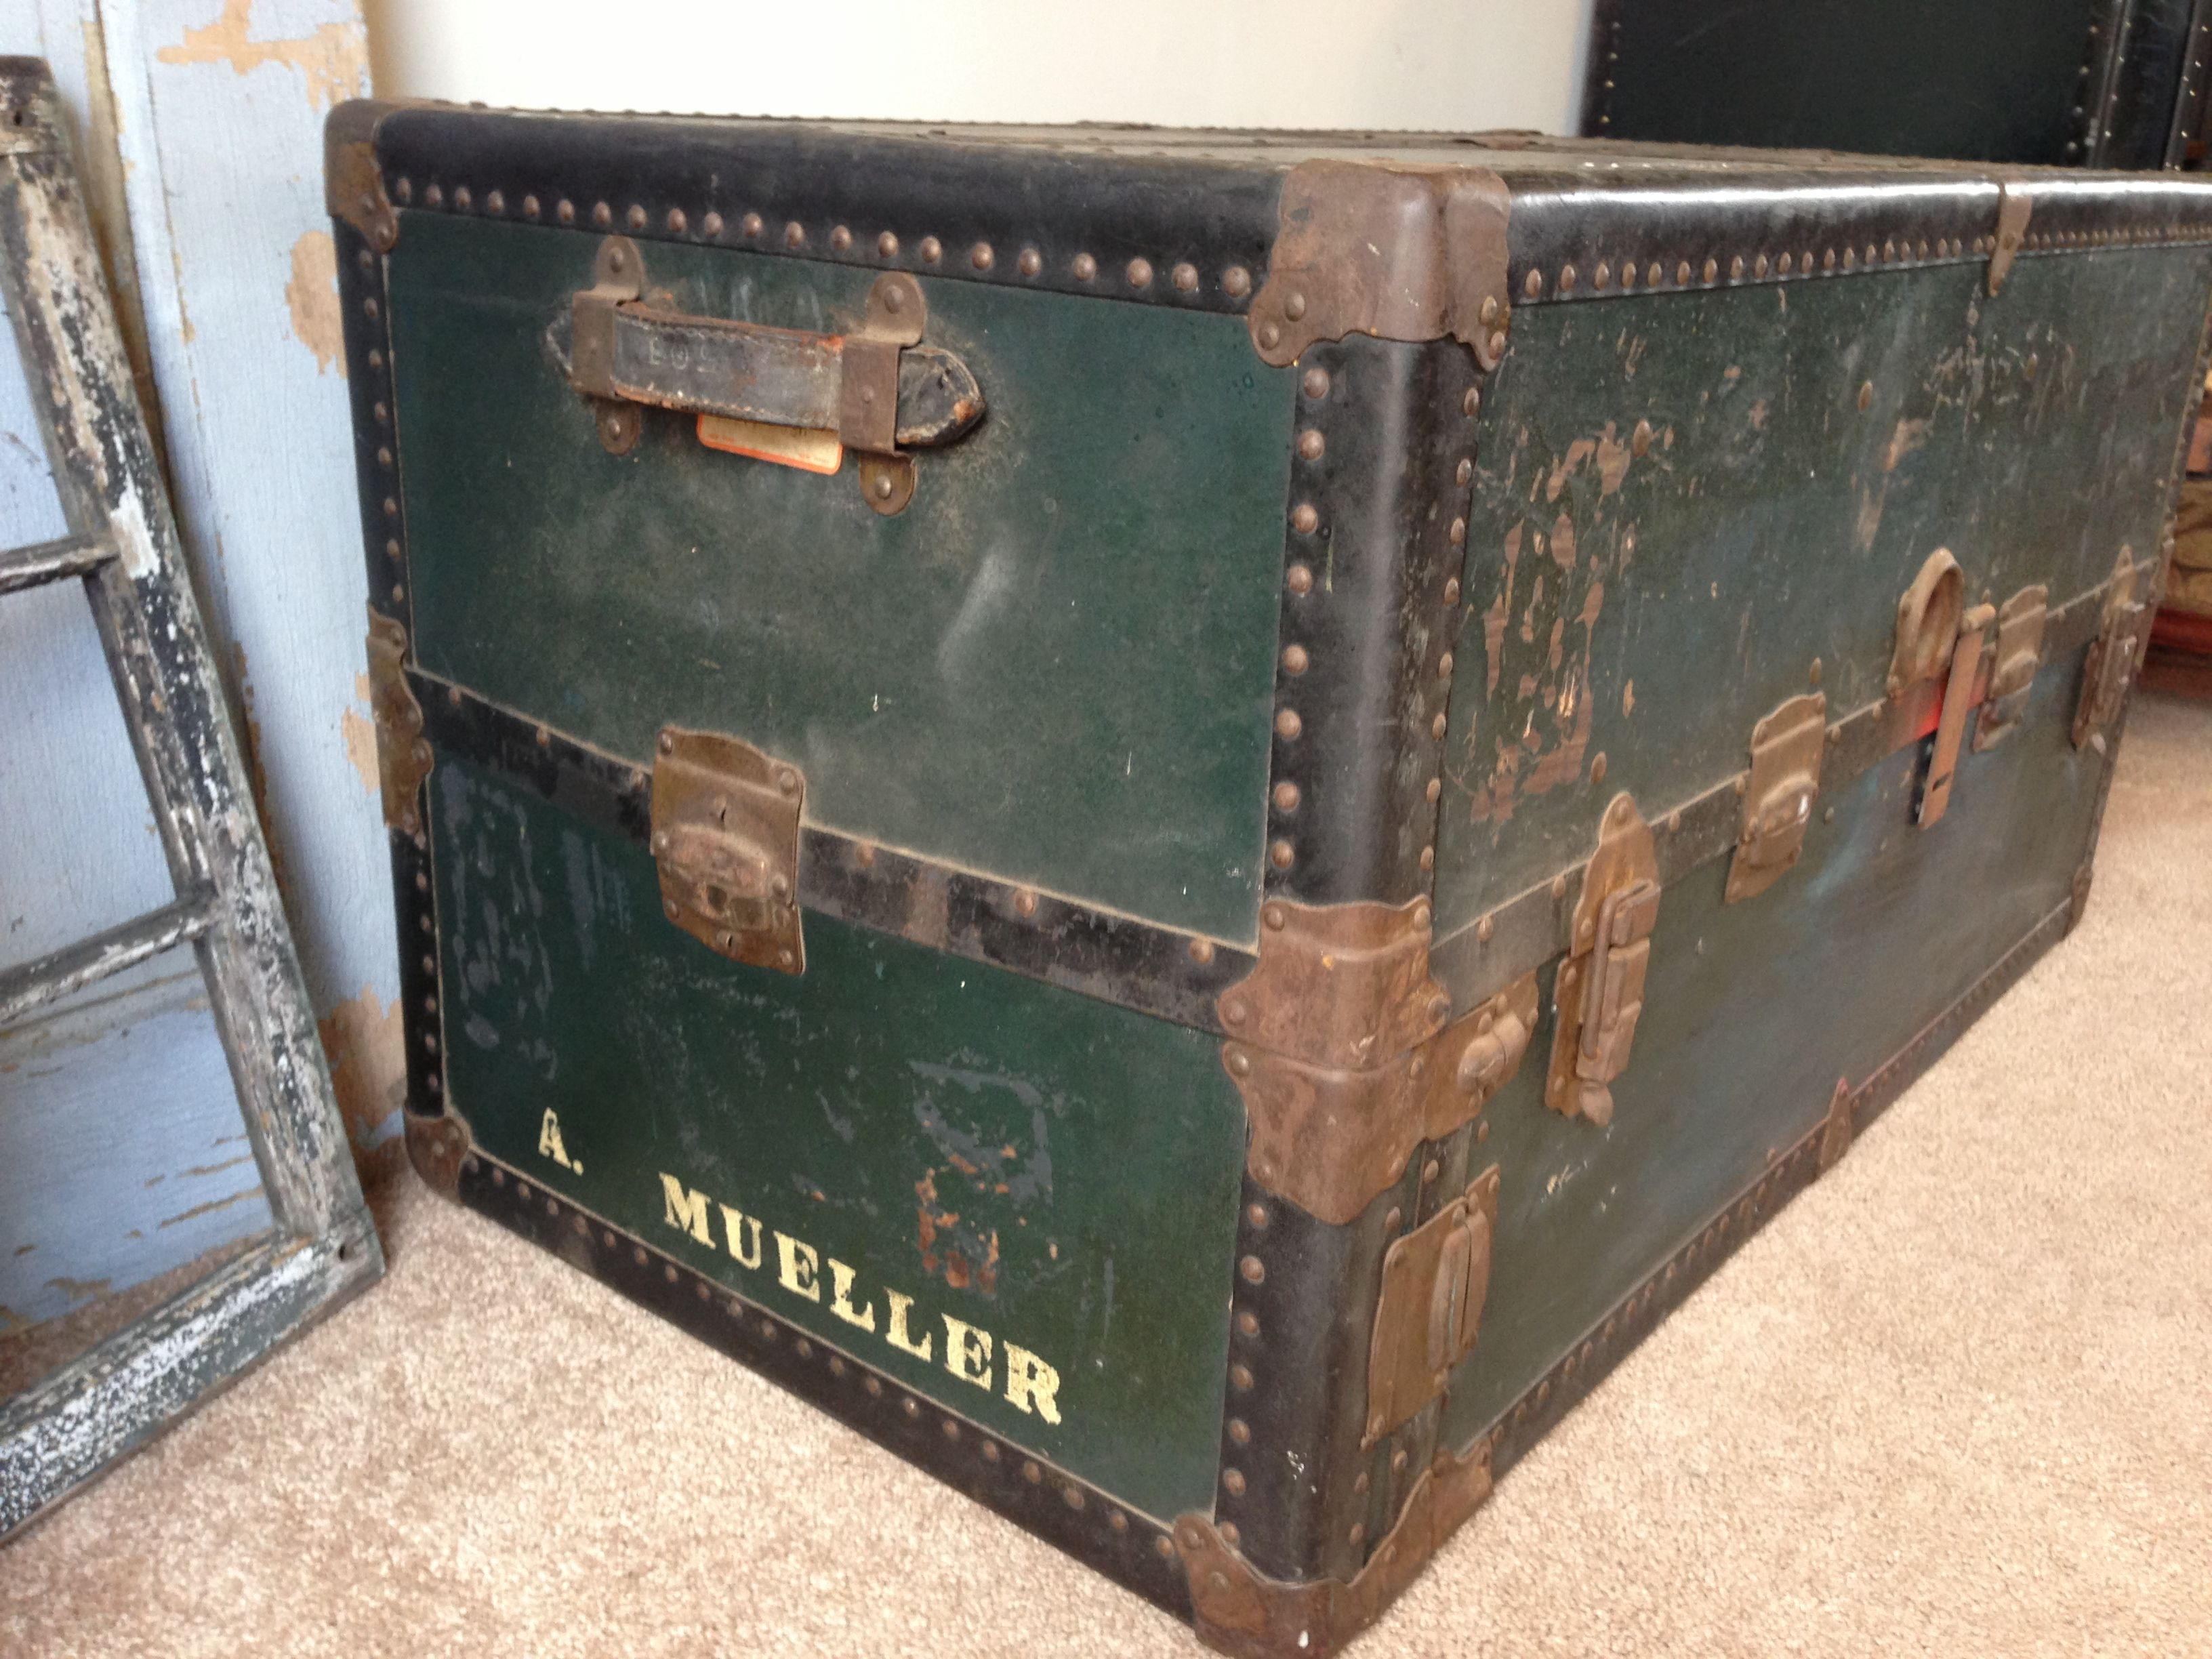 Vintage Steamer Trunk S Vintage 1950s Steamer Trunk Use As Coffee Vintage Steamer Trunk Vintage Trunks Coffee Table Trunk